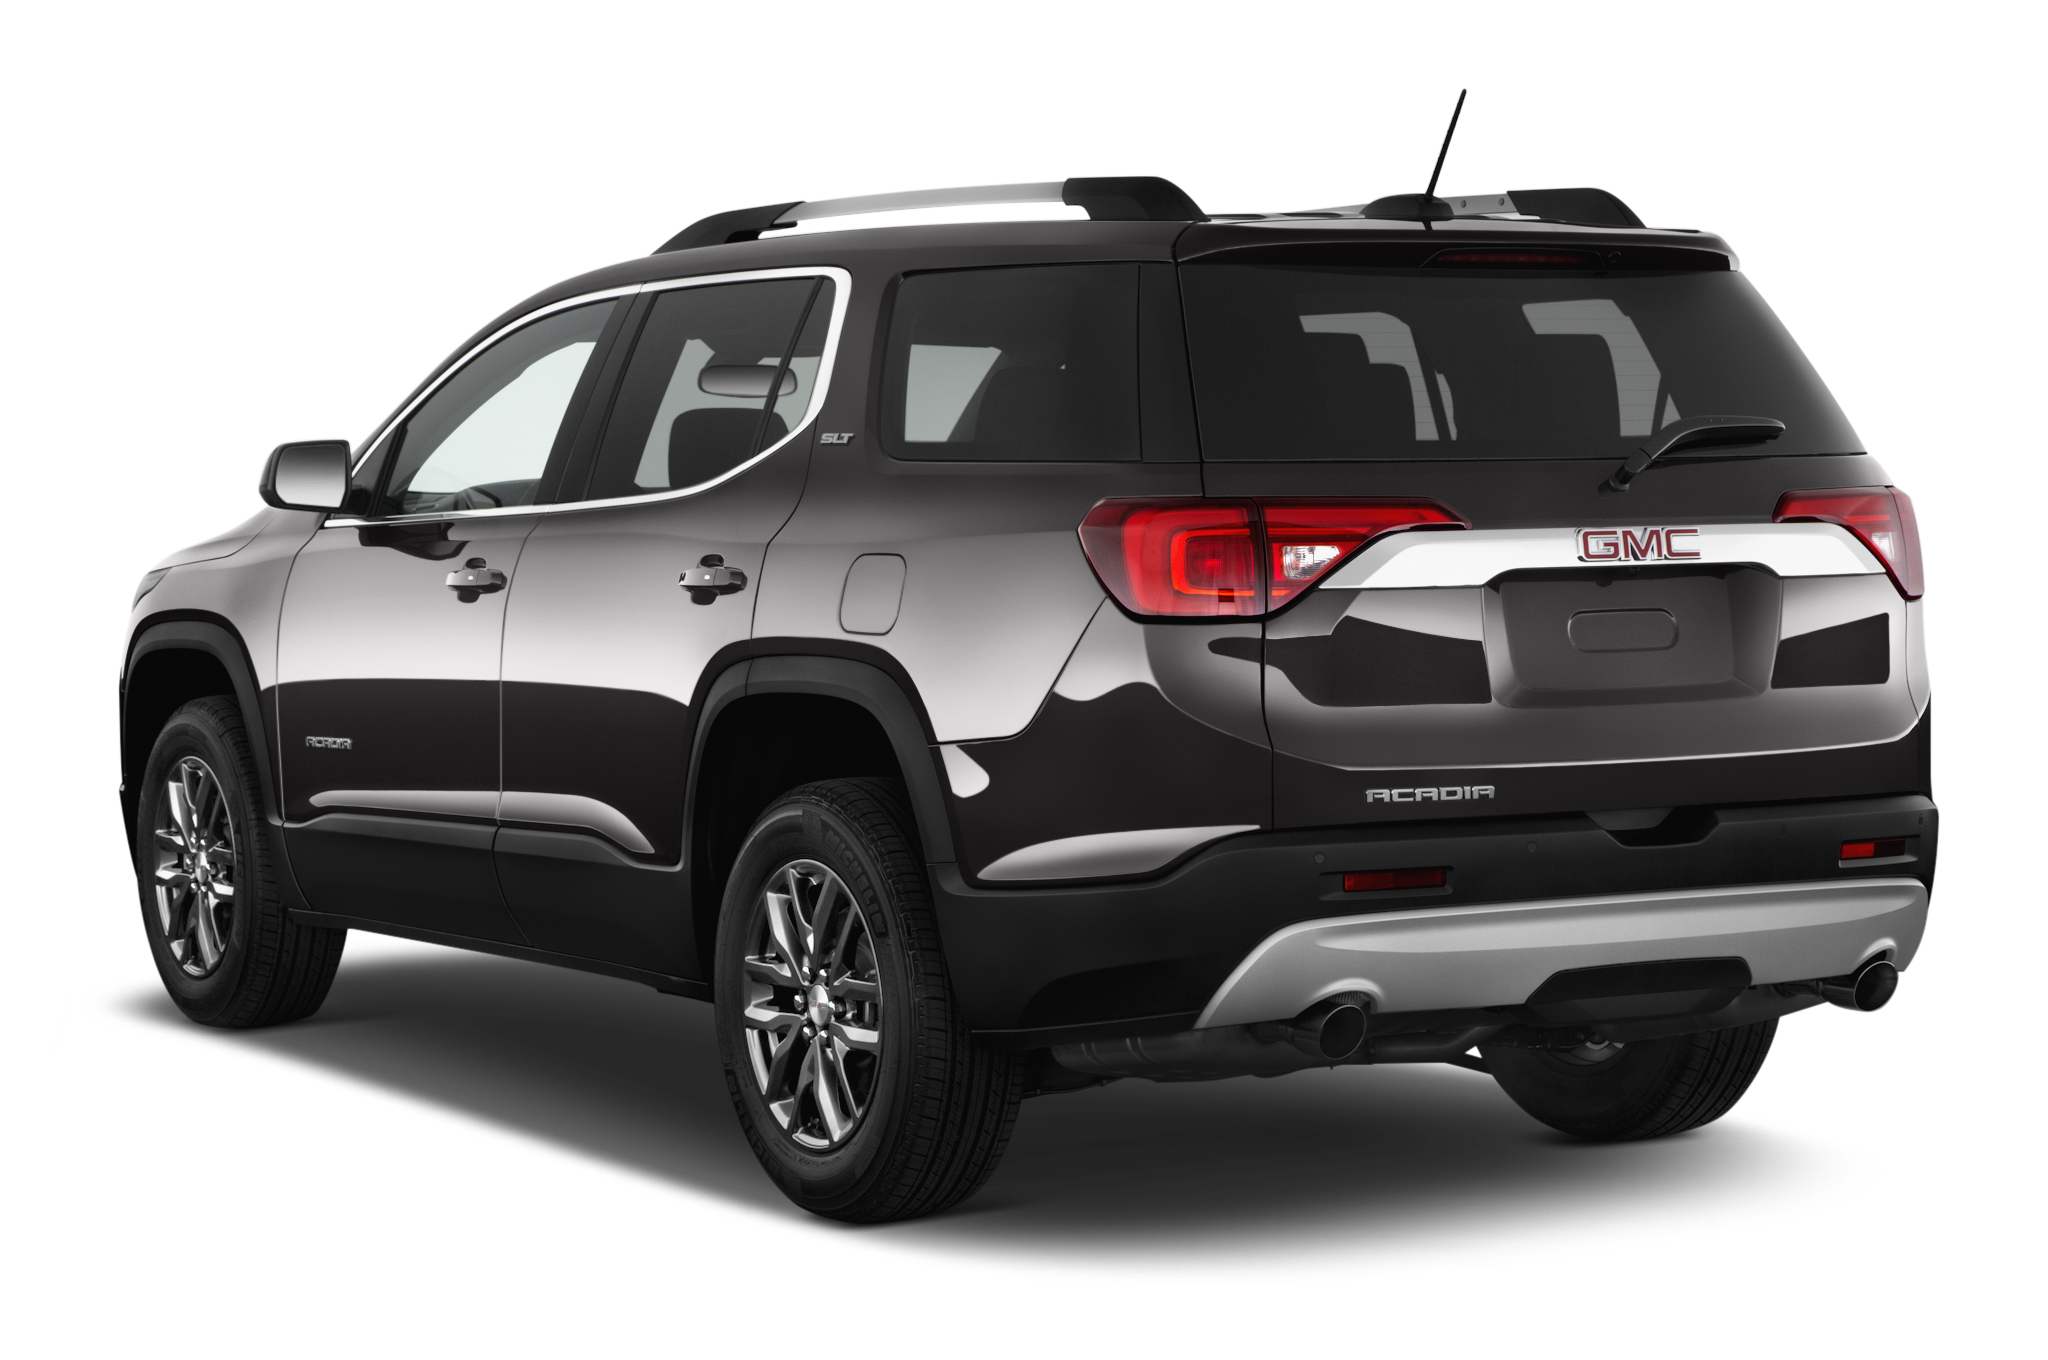 Car Exterior: 2017 GMC Acadia Priced From $29,995 To $47,845